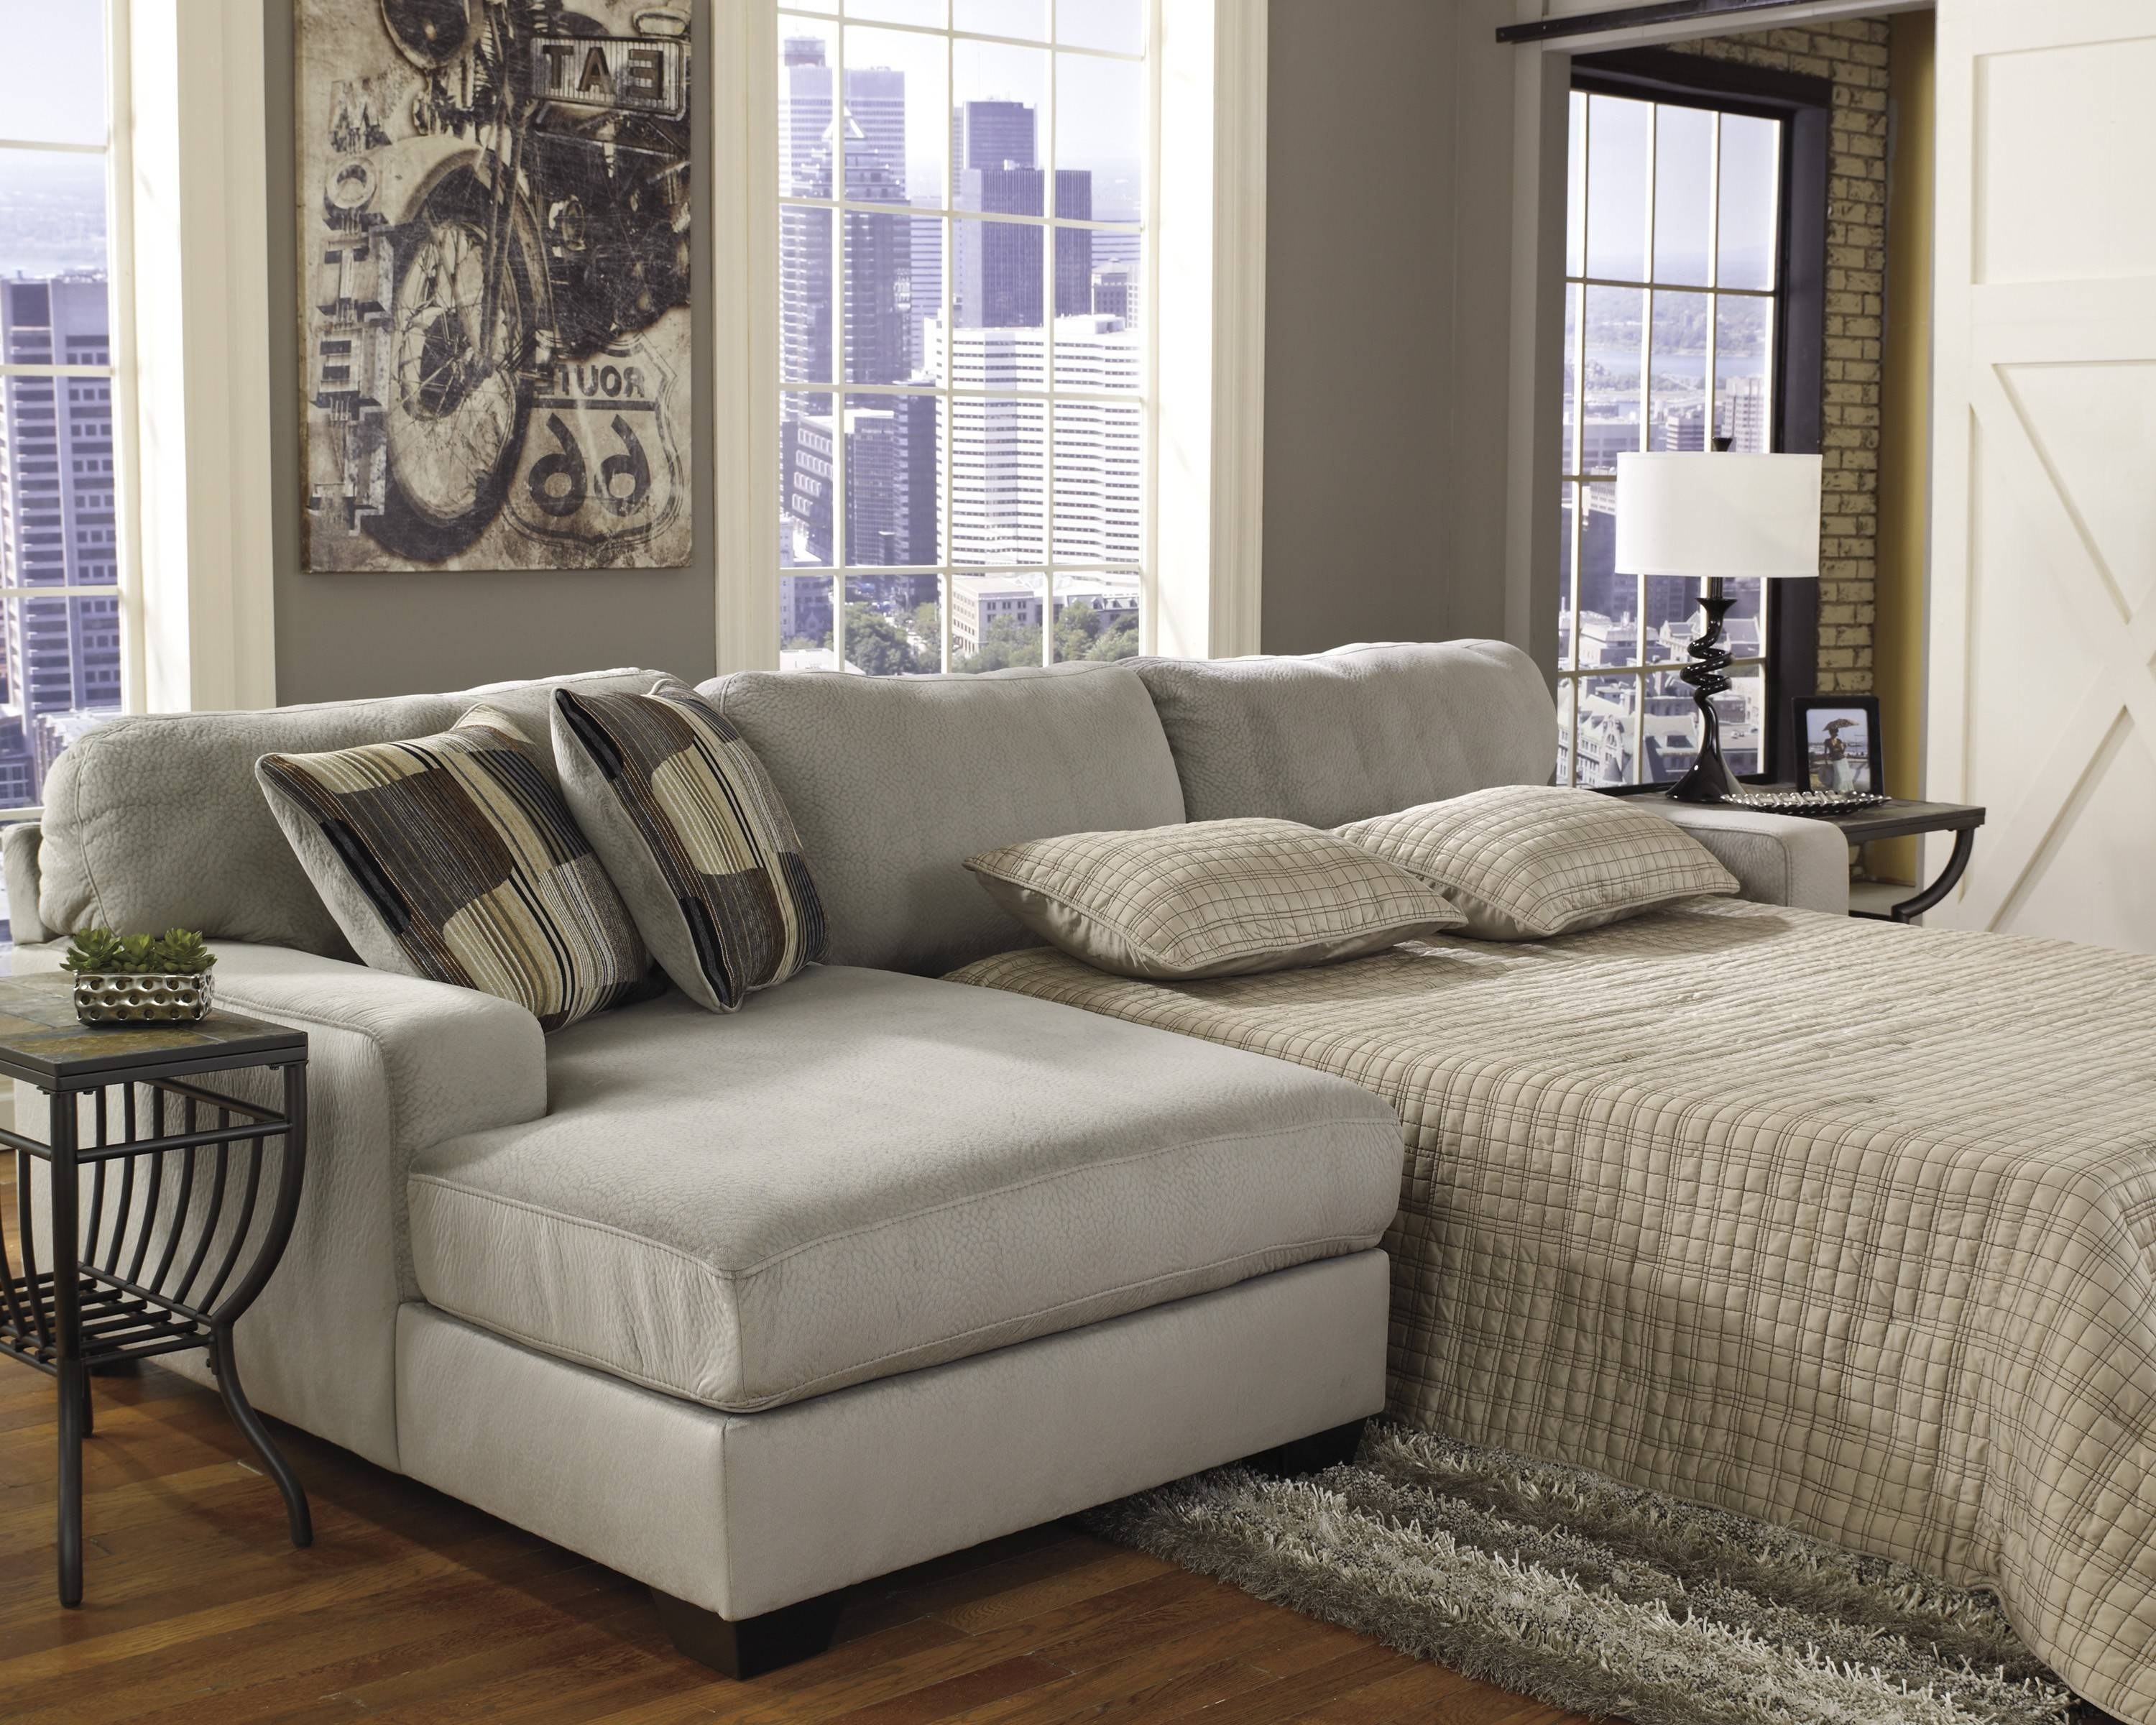 Furniture: 72 Inch Sleeper Sofa | Jcpenney Couches | 3 Piece within Los Angeles Sleeper Sofas (Image 3 of 15)